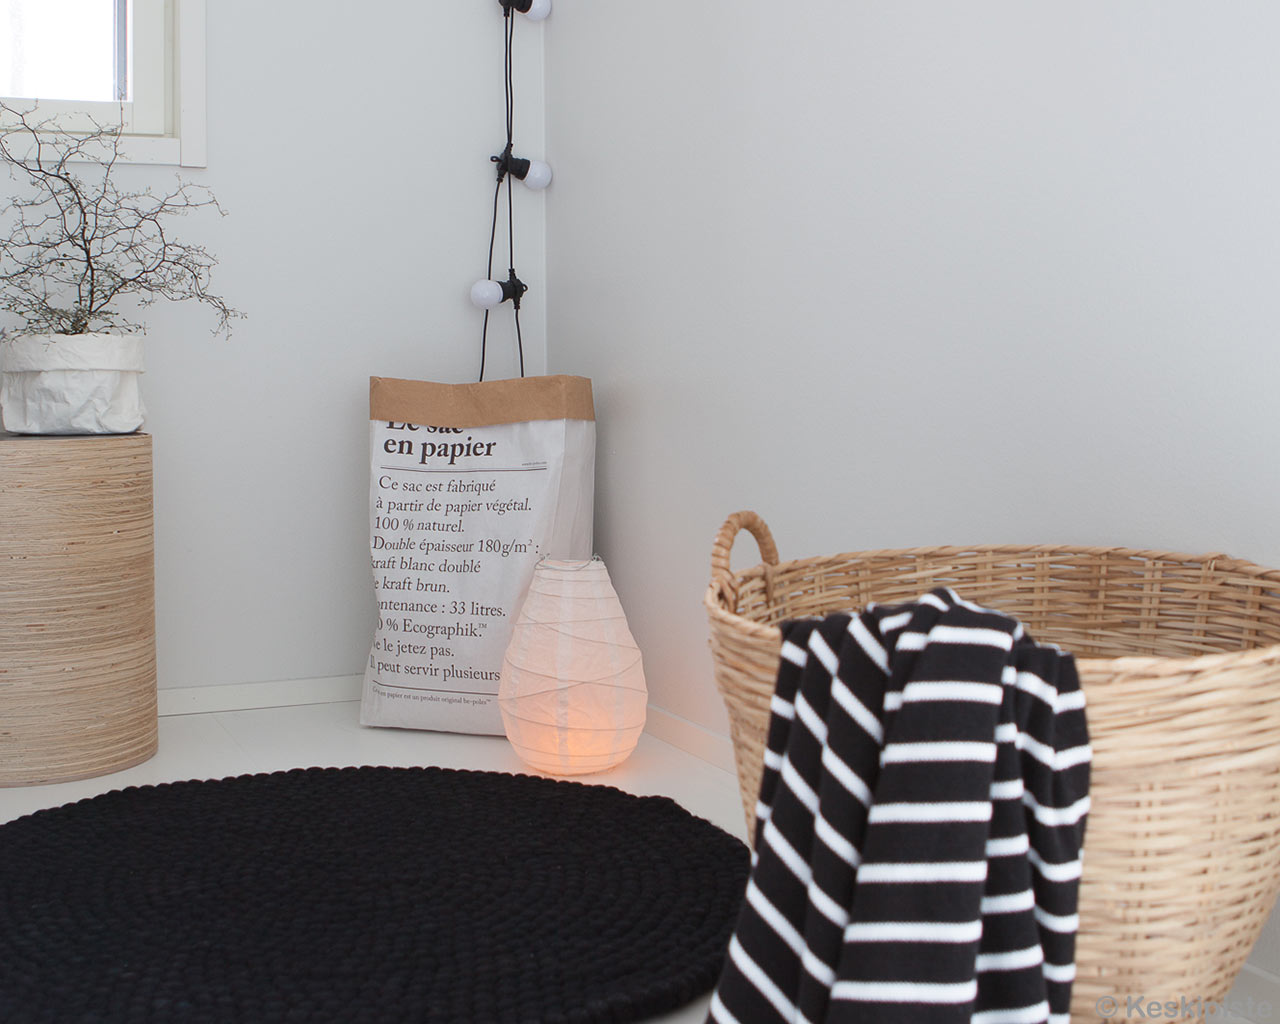 lamp wicker basket laundry rugs black 1